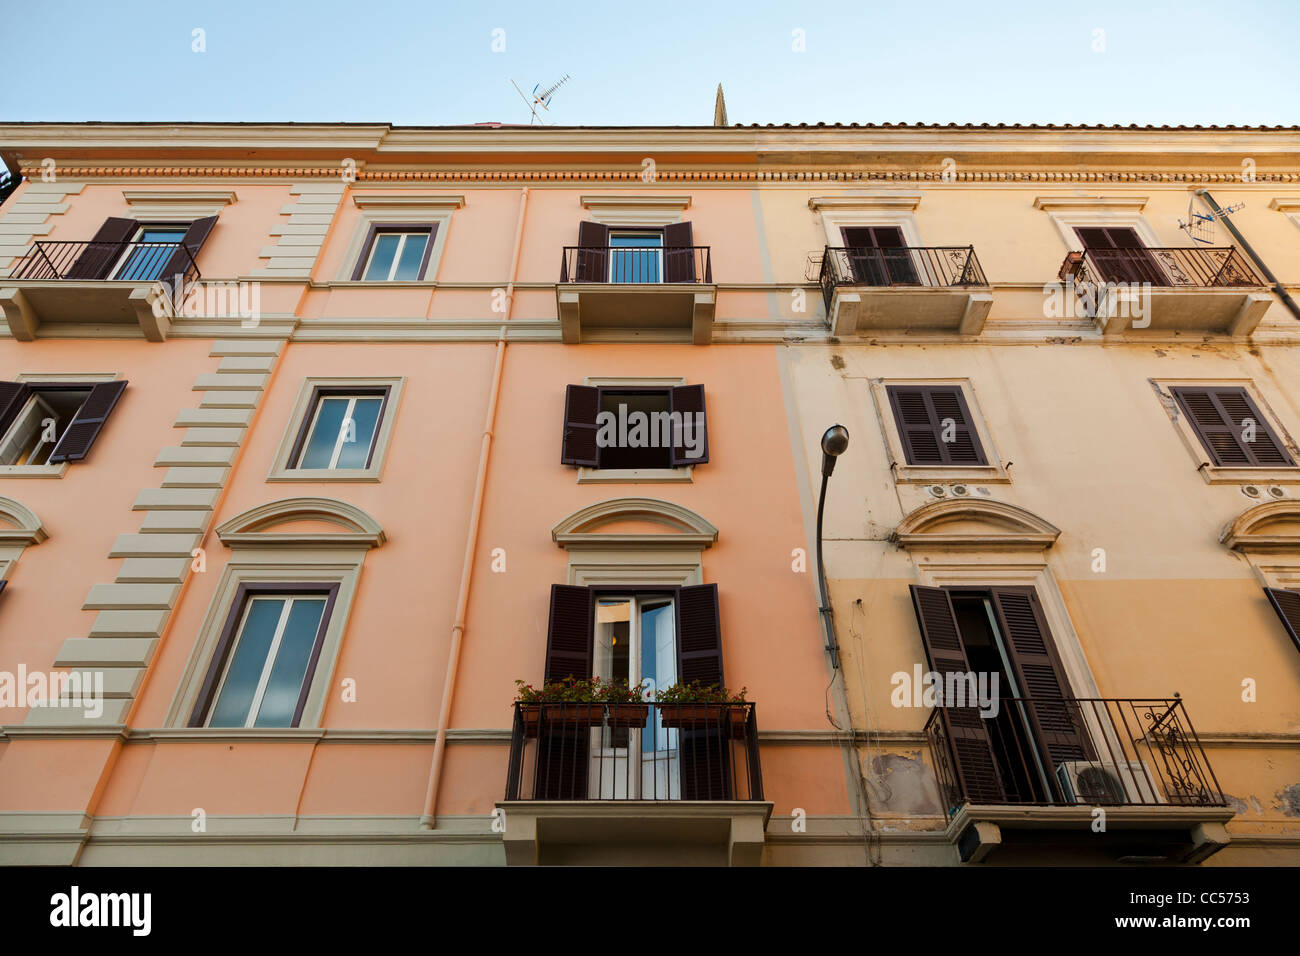 shuttered windows and balconies on italian houses at Anzio - Stock Image